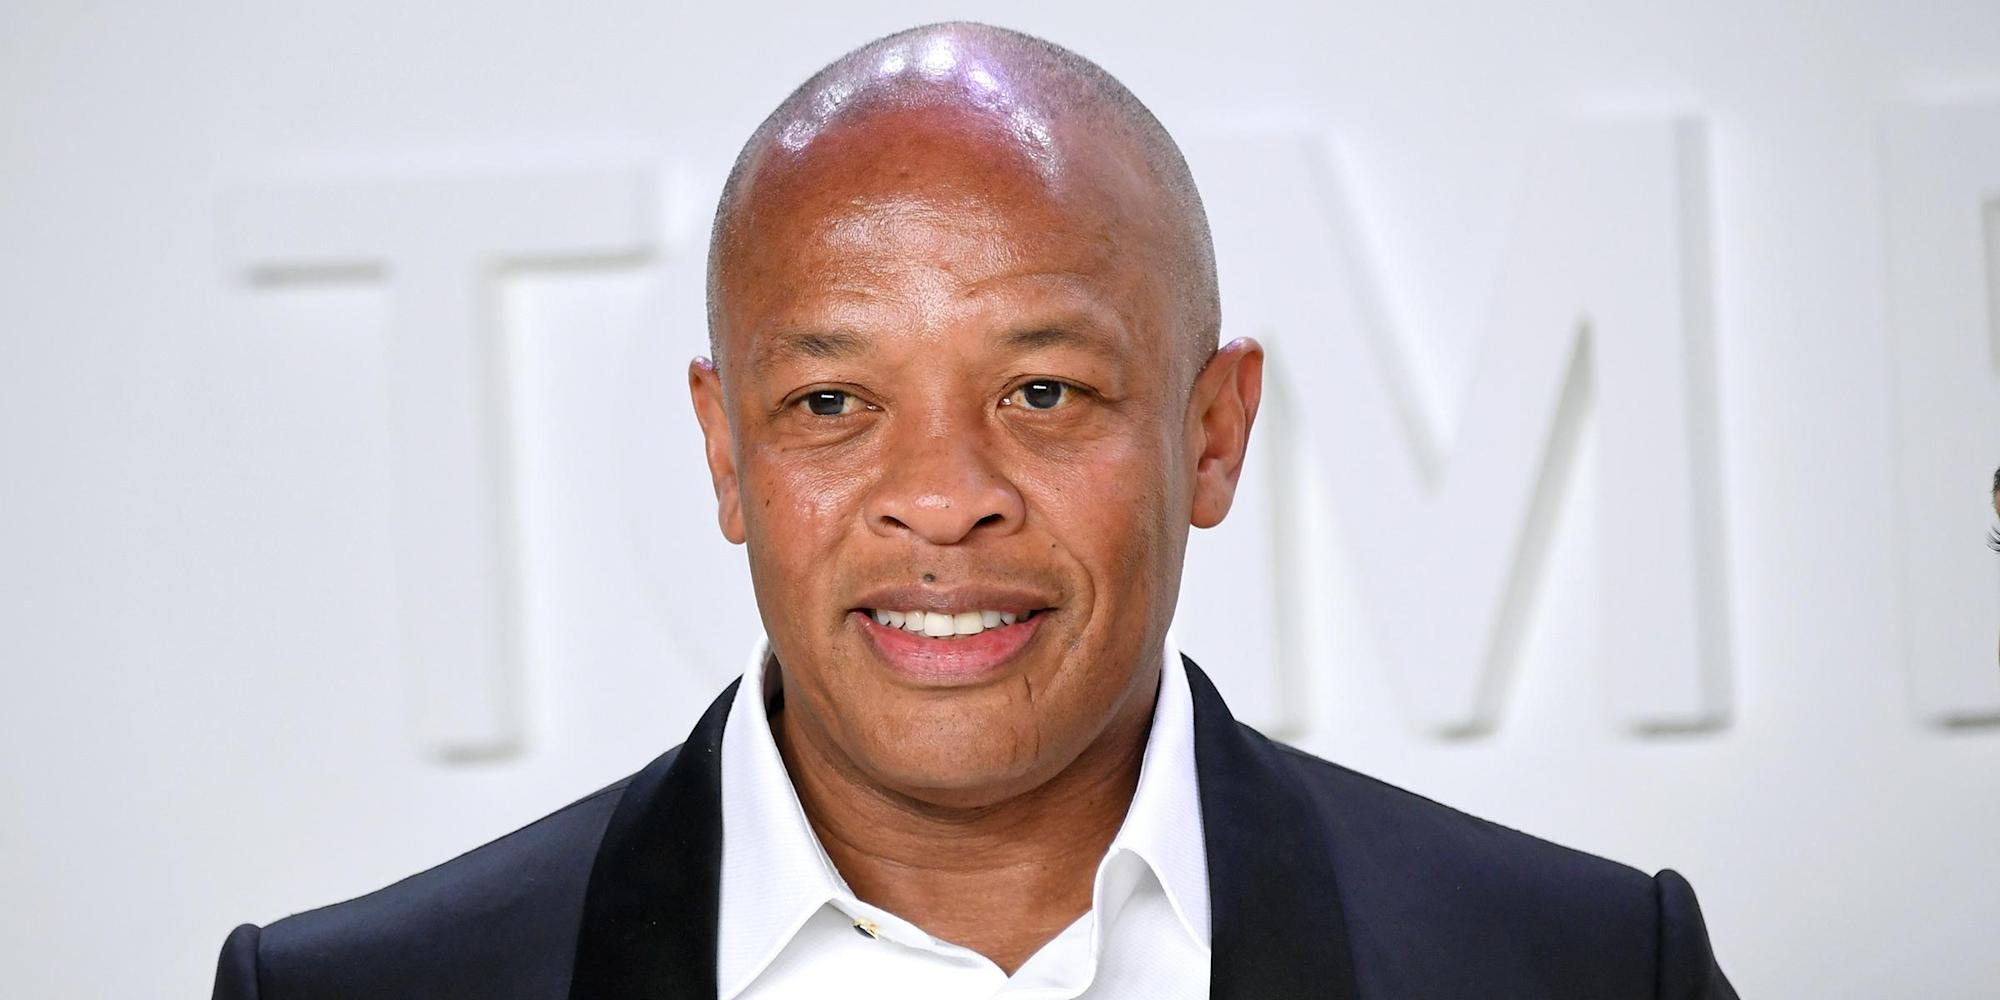 Dr. Dre's house targeted in burglary attempt hours after he was admitted to hospital, police say